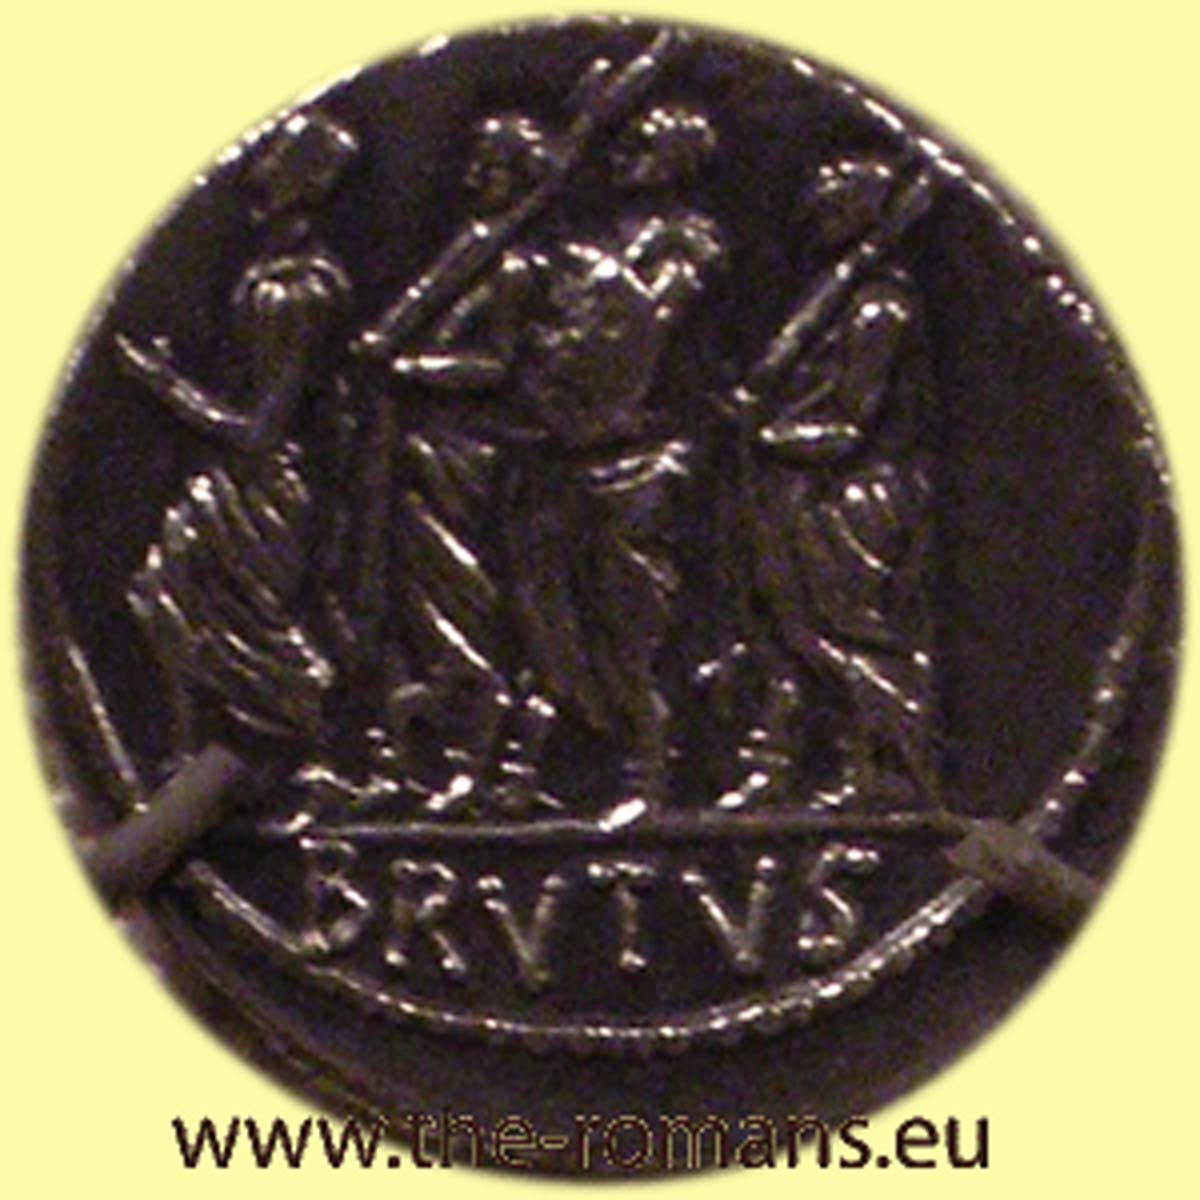 Coin with iunius Brutus as consul